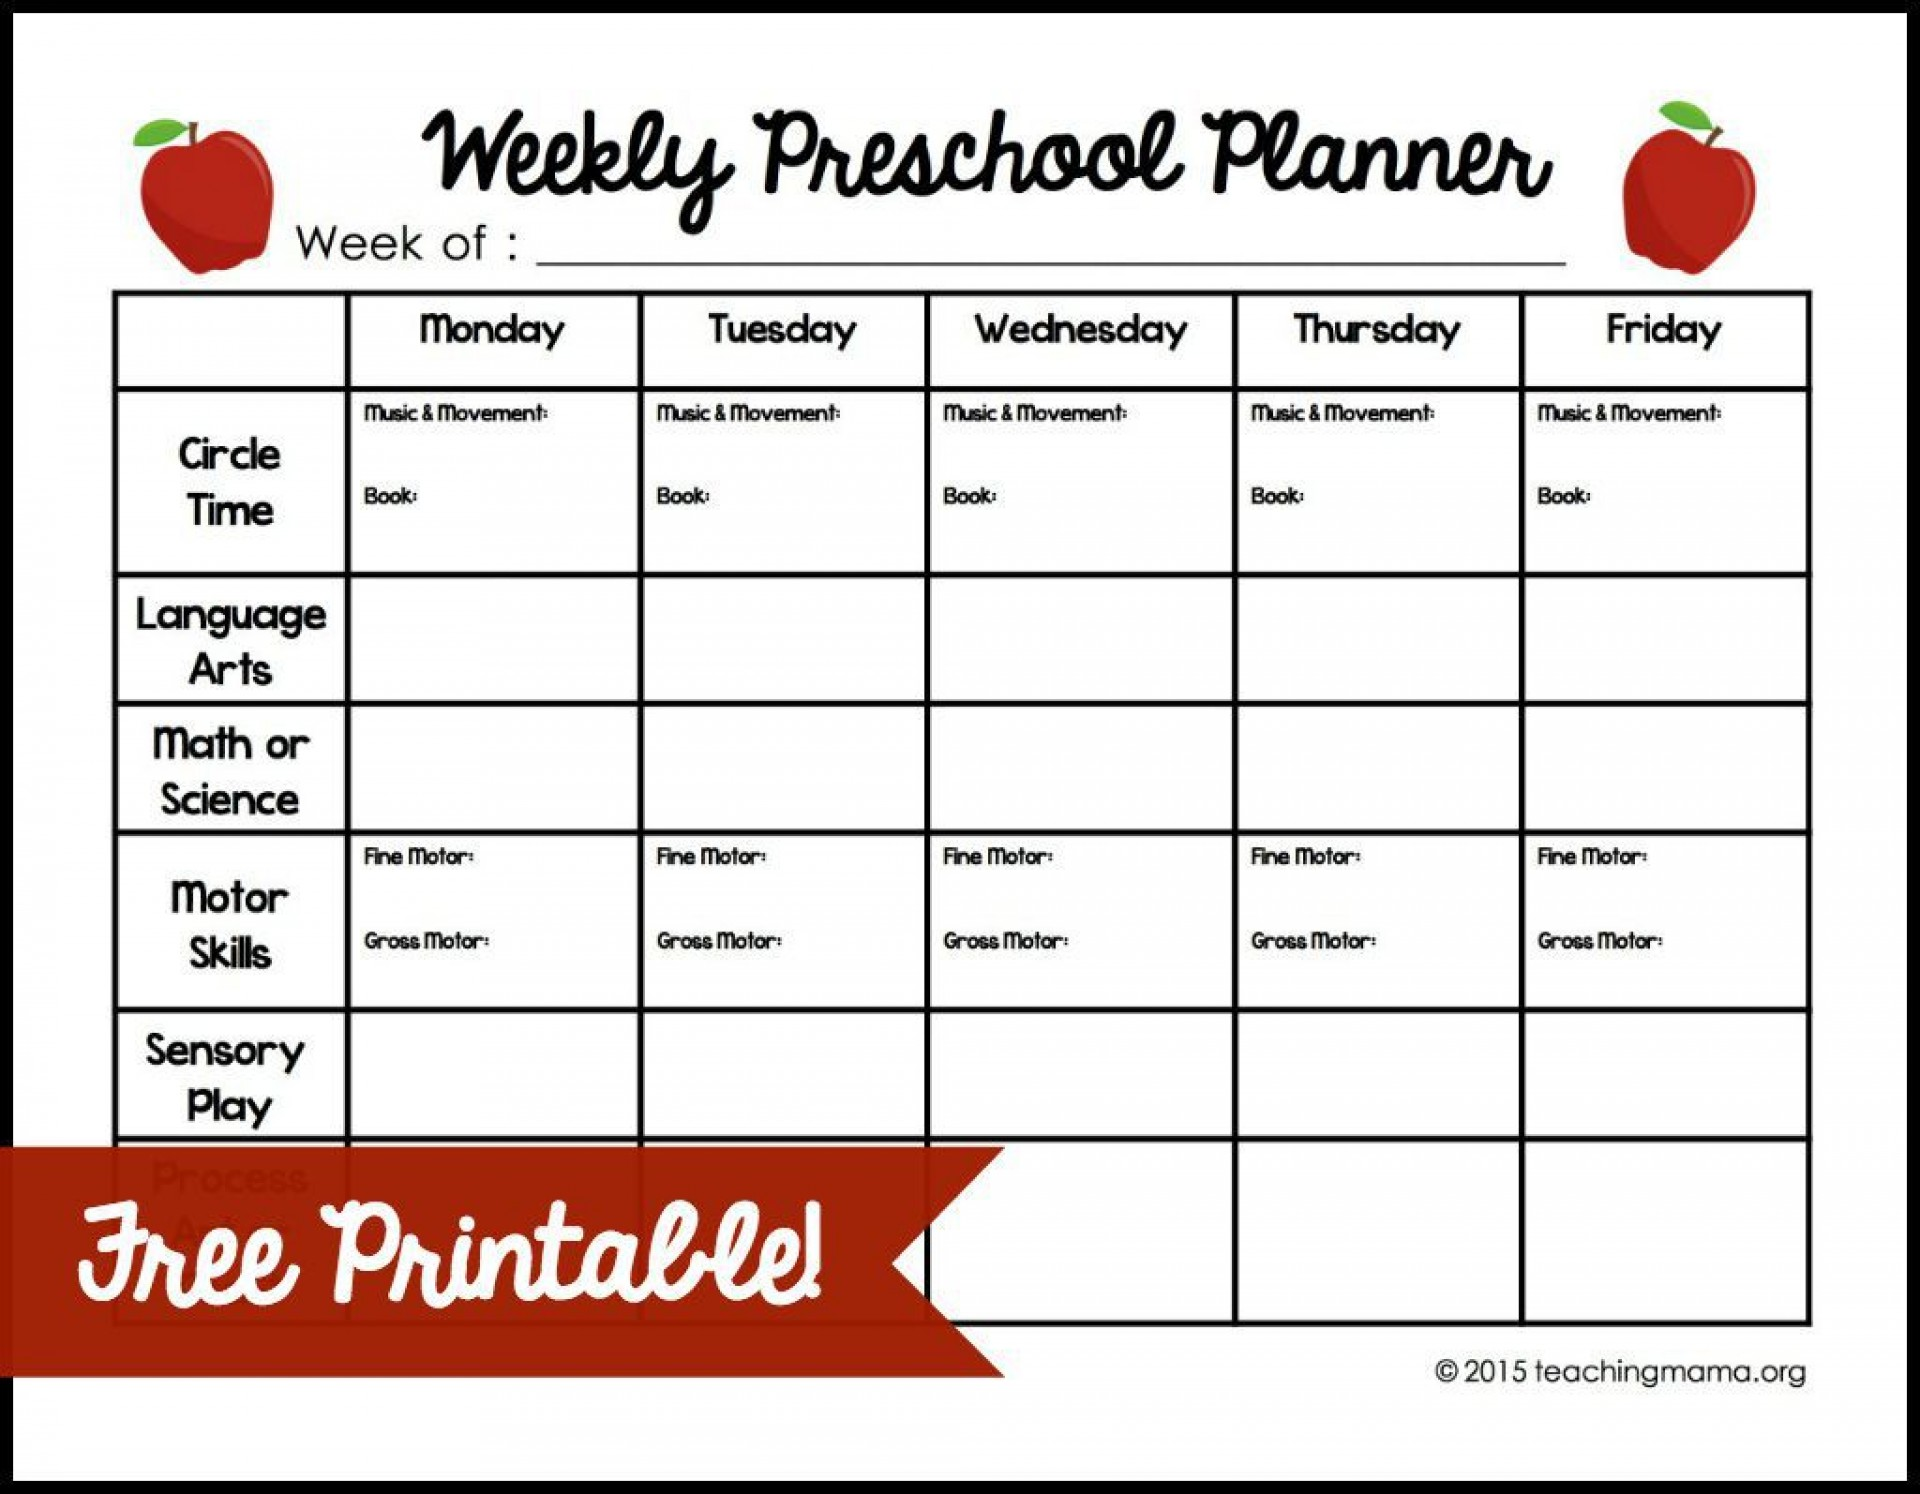 009 Astounding Weekly Lesson Plan Template Photo  Preschool Google Doc Editable1920